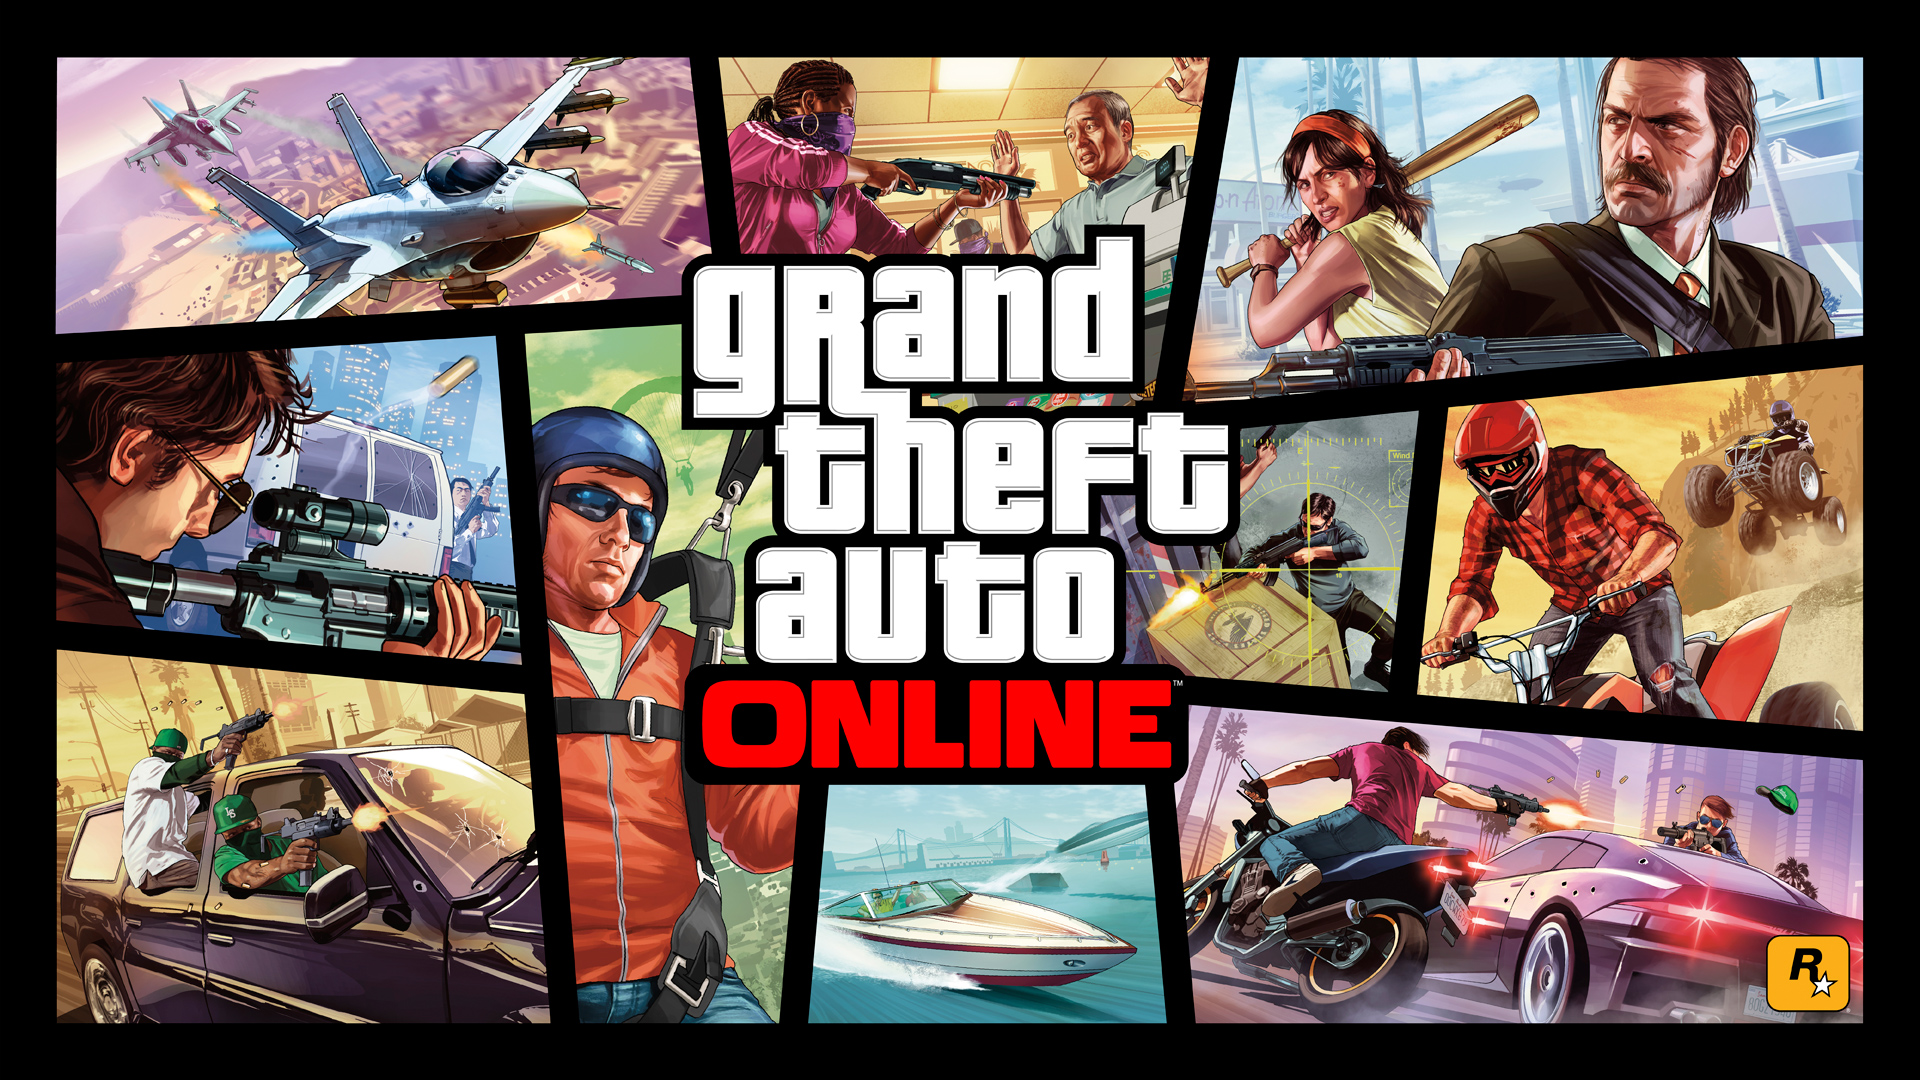 Grand Theft Auto 3 Wallpaper Posted By Sarah Johnson